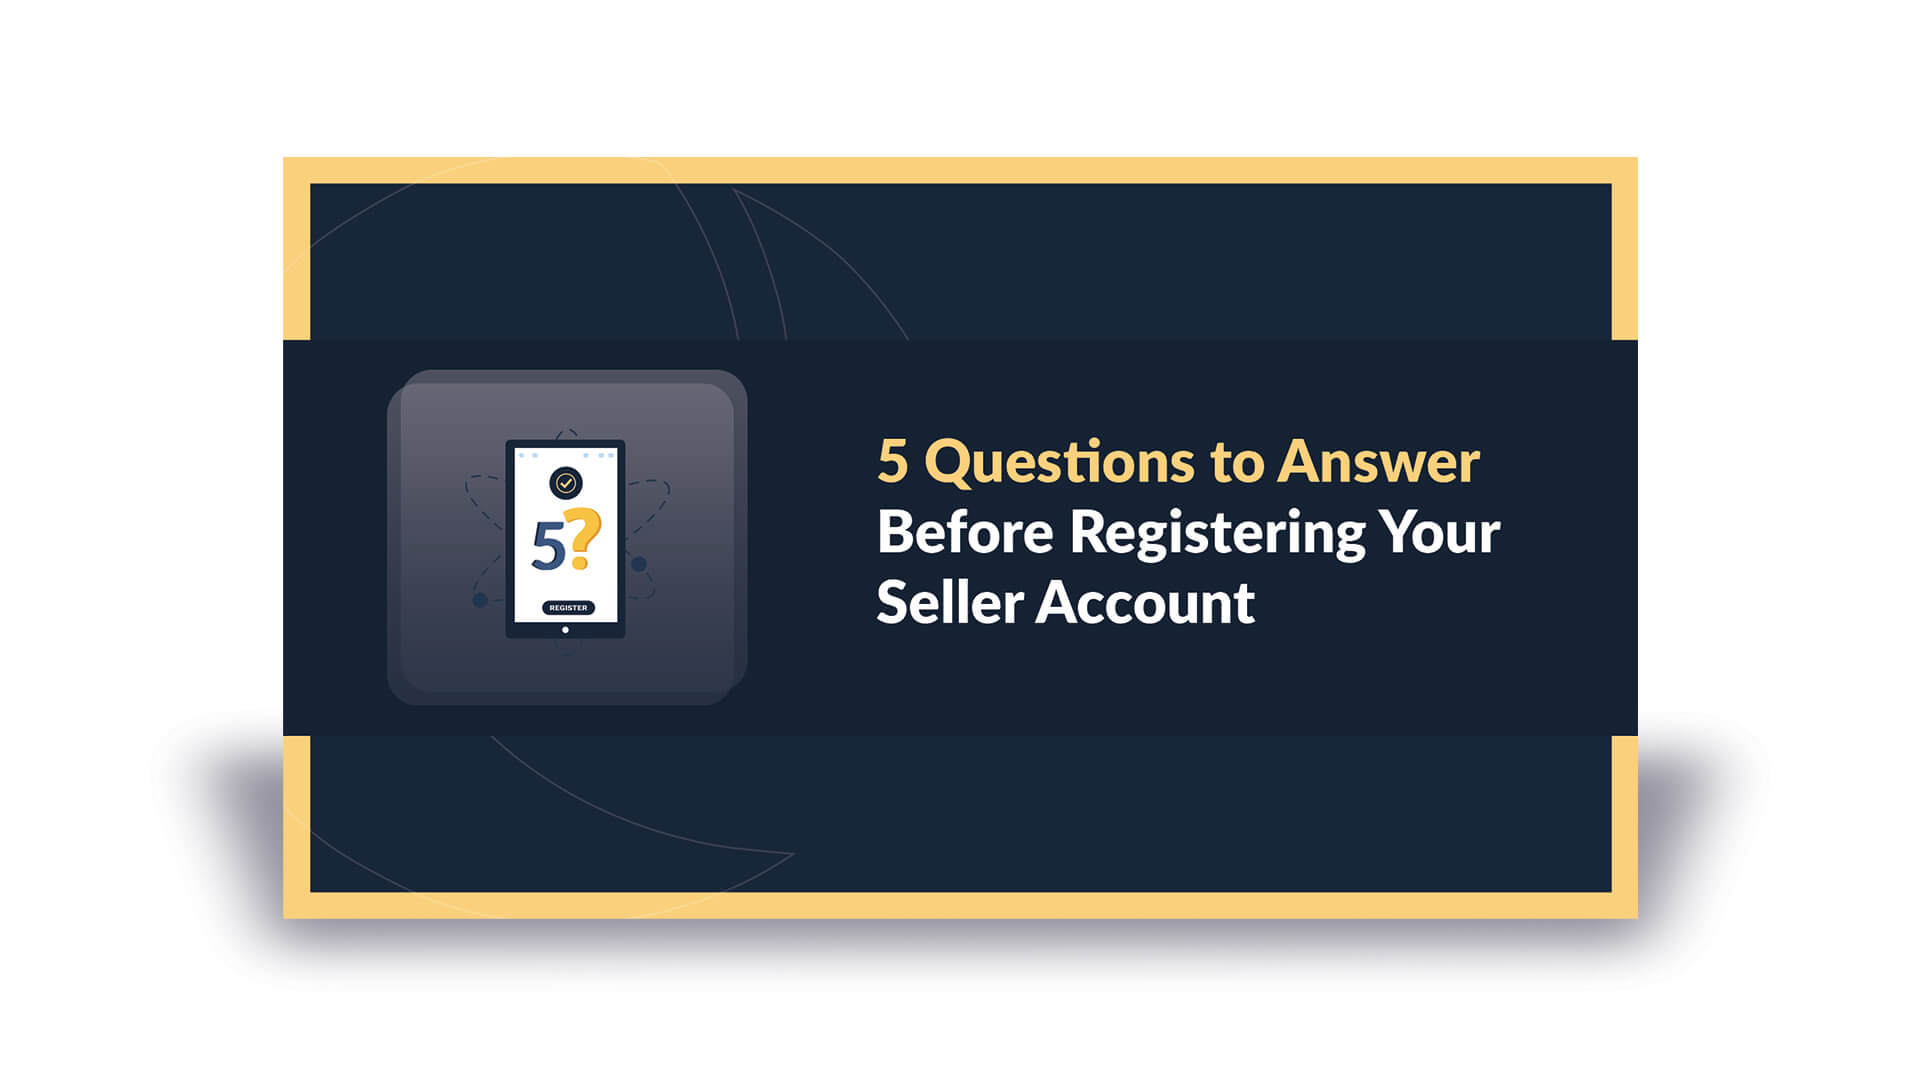 5 Questions to Answer Before Registering Your Seller Account